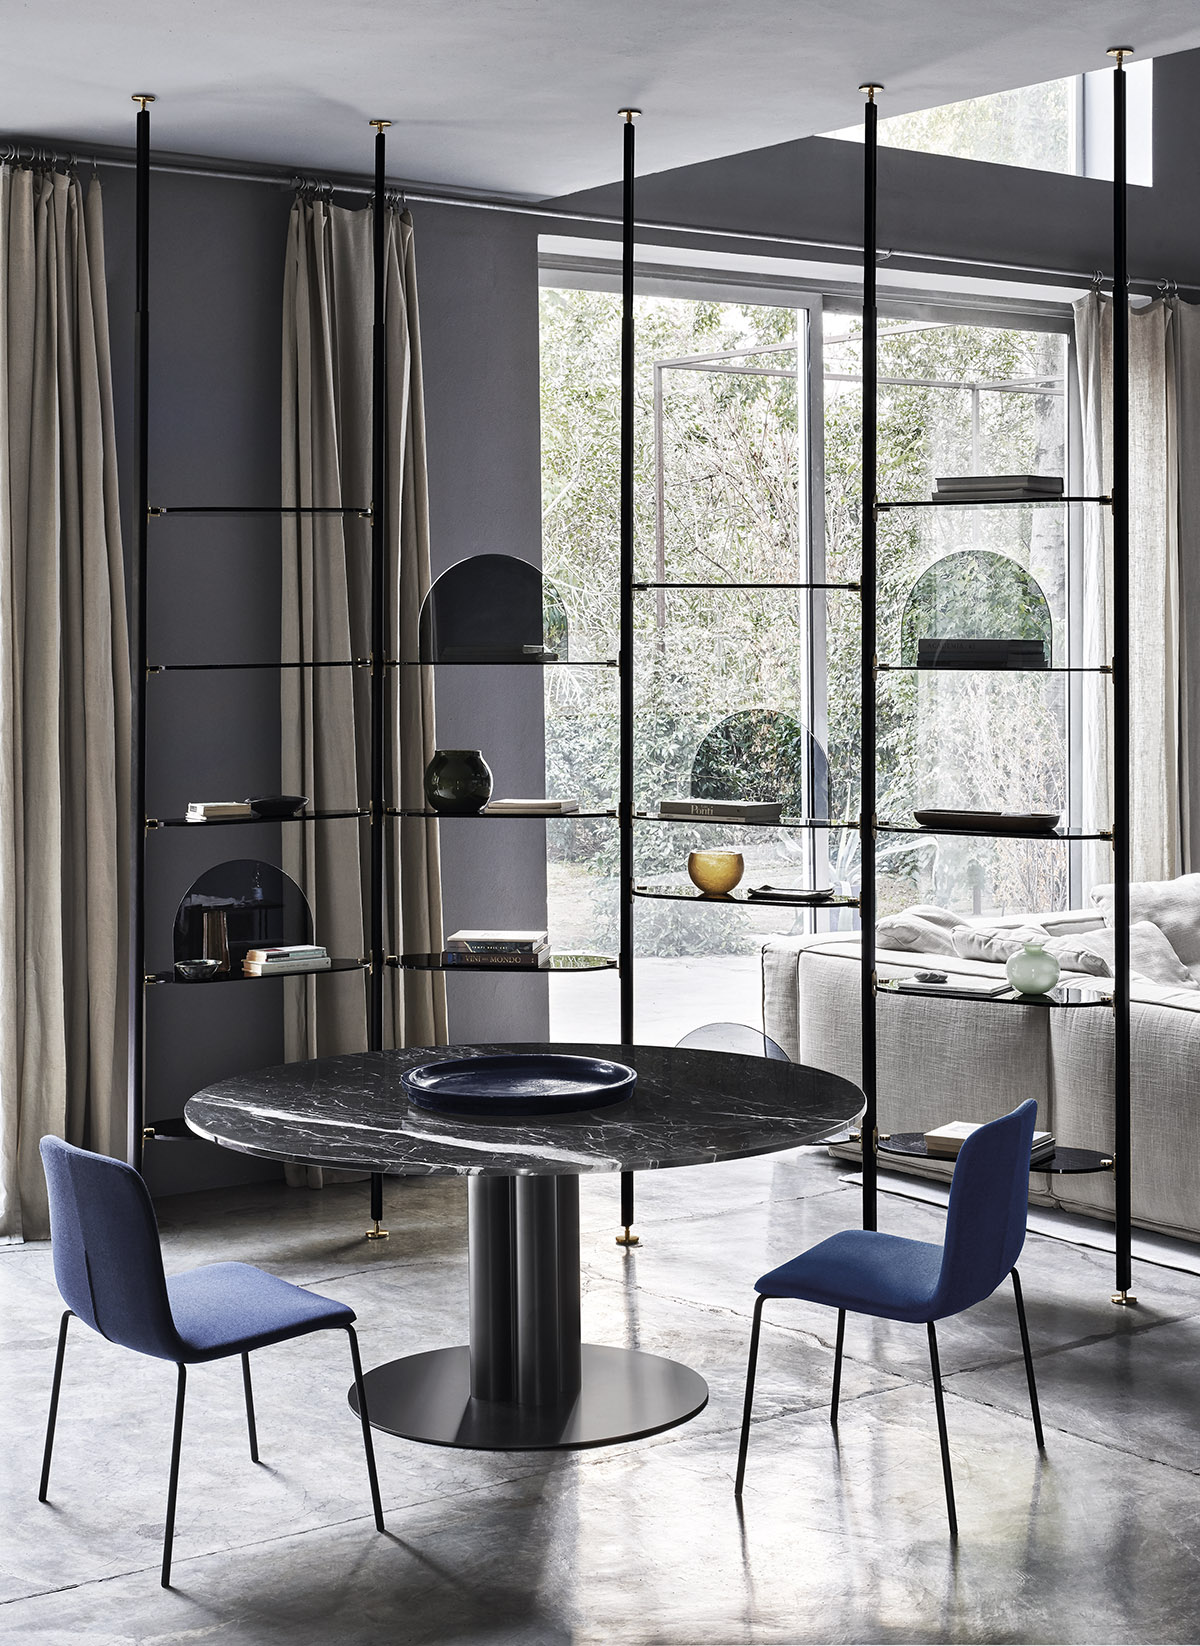 arflex-Brianza-chair-without-with-armrests-design-Claesson-Koivisto-Rune-fabric-living-dining-office-hospitality-project-luxury-madeinitaly-modern-contemporary